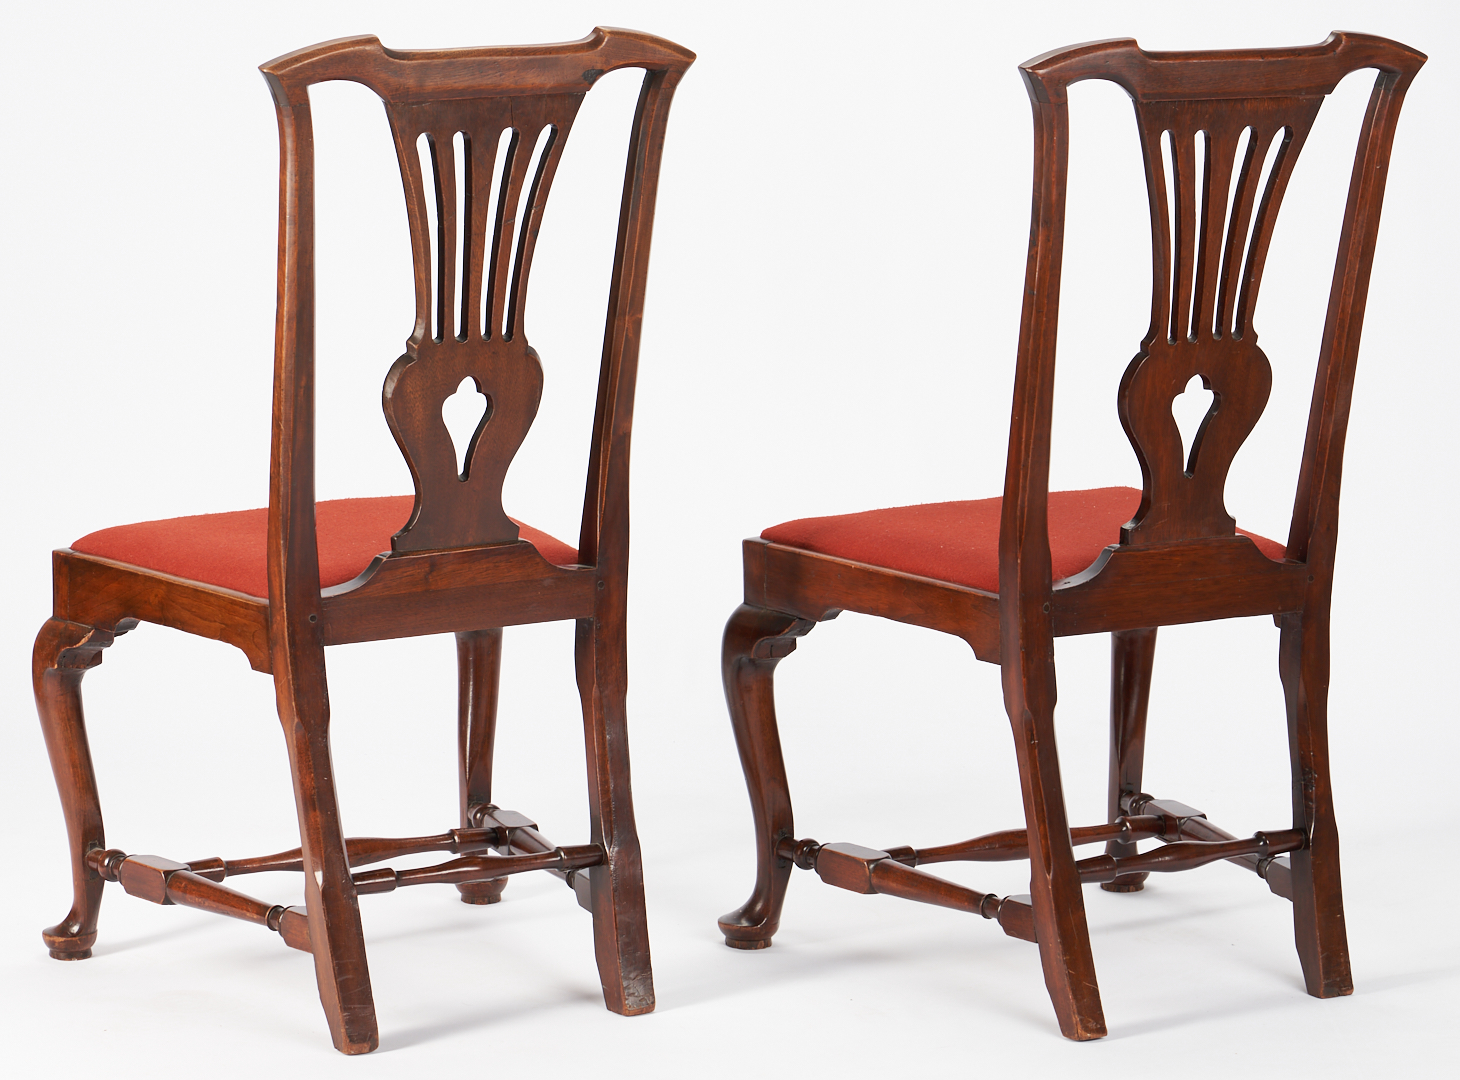 Lot 223: 6 Period Chippendale Chairs attrib. Portsmouth, NH